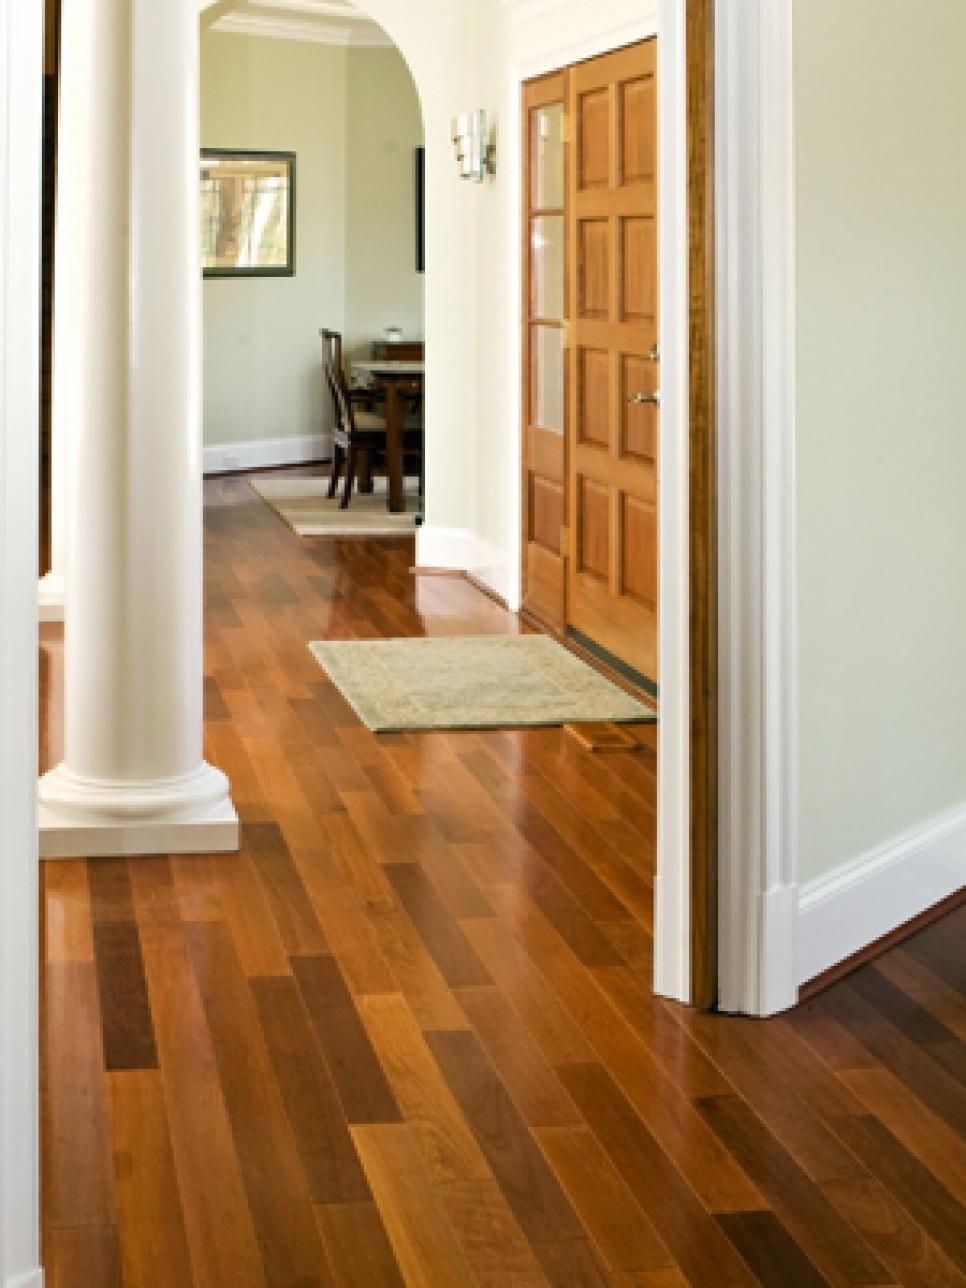 hardwood flooring ottawa of 10 stunning hardwood flooring options interior design styles and for 10 stunning hardwood flooring options interior design styles and color schemes for home decorating